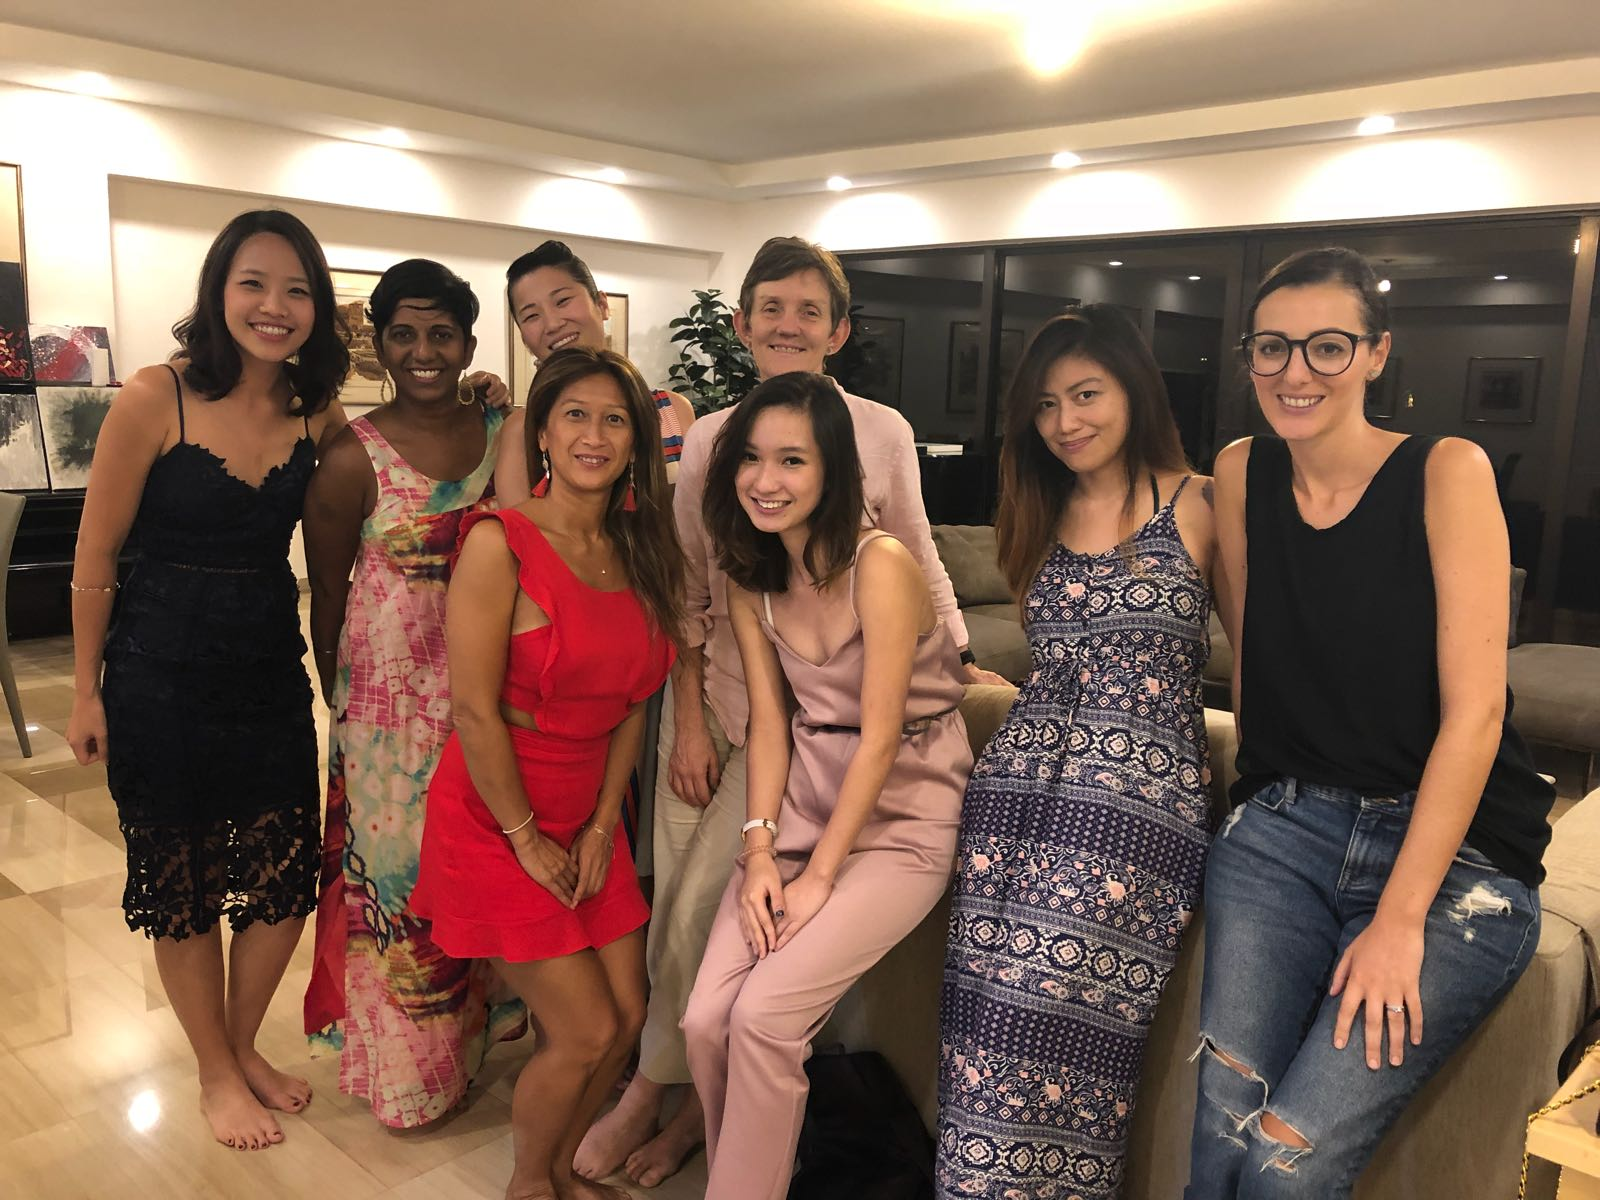 Two of the beautiful hosts for BLOOM 2018: Beverly Hiong and Cécile Spirit with guests Julienne Chan, Fiona Silva, Damaris Carlisle, Akiko Otao, Charlie Leong, Nawel Hammoumraoui.